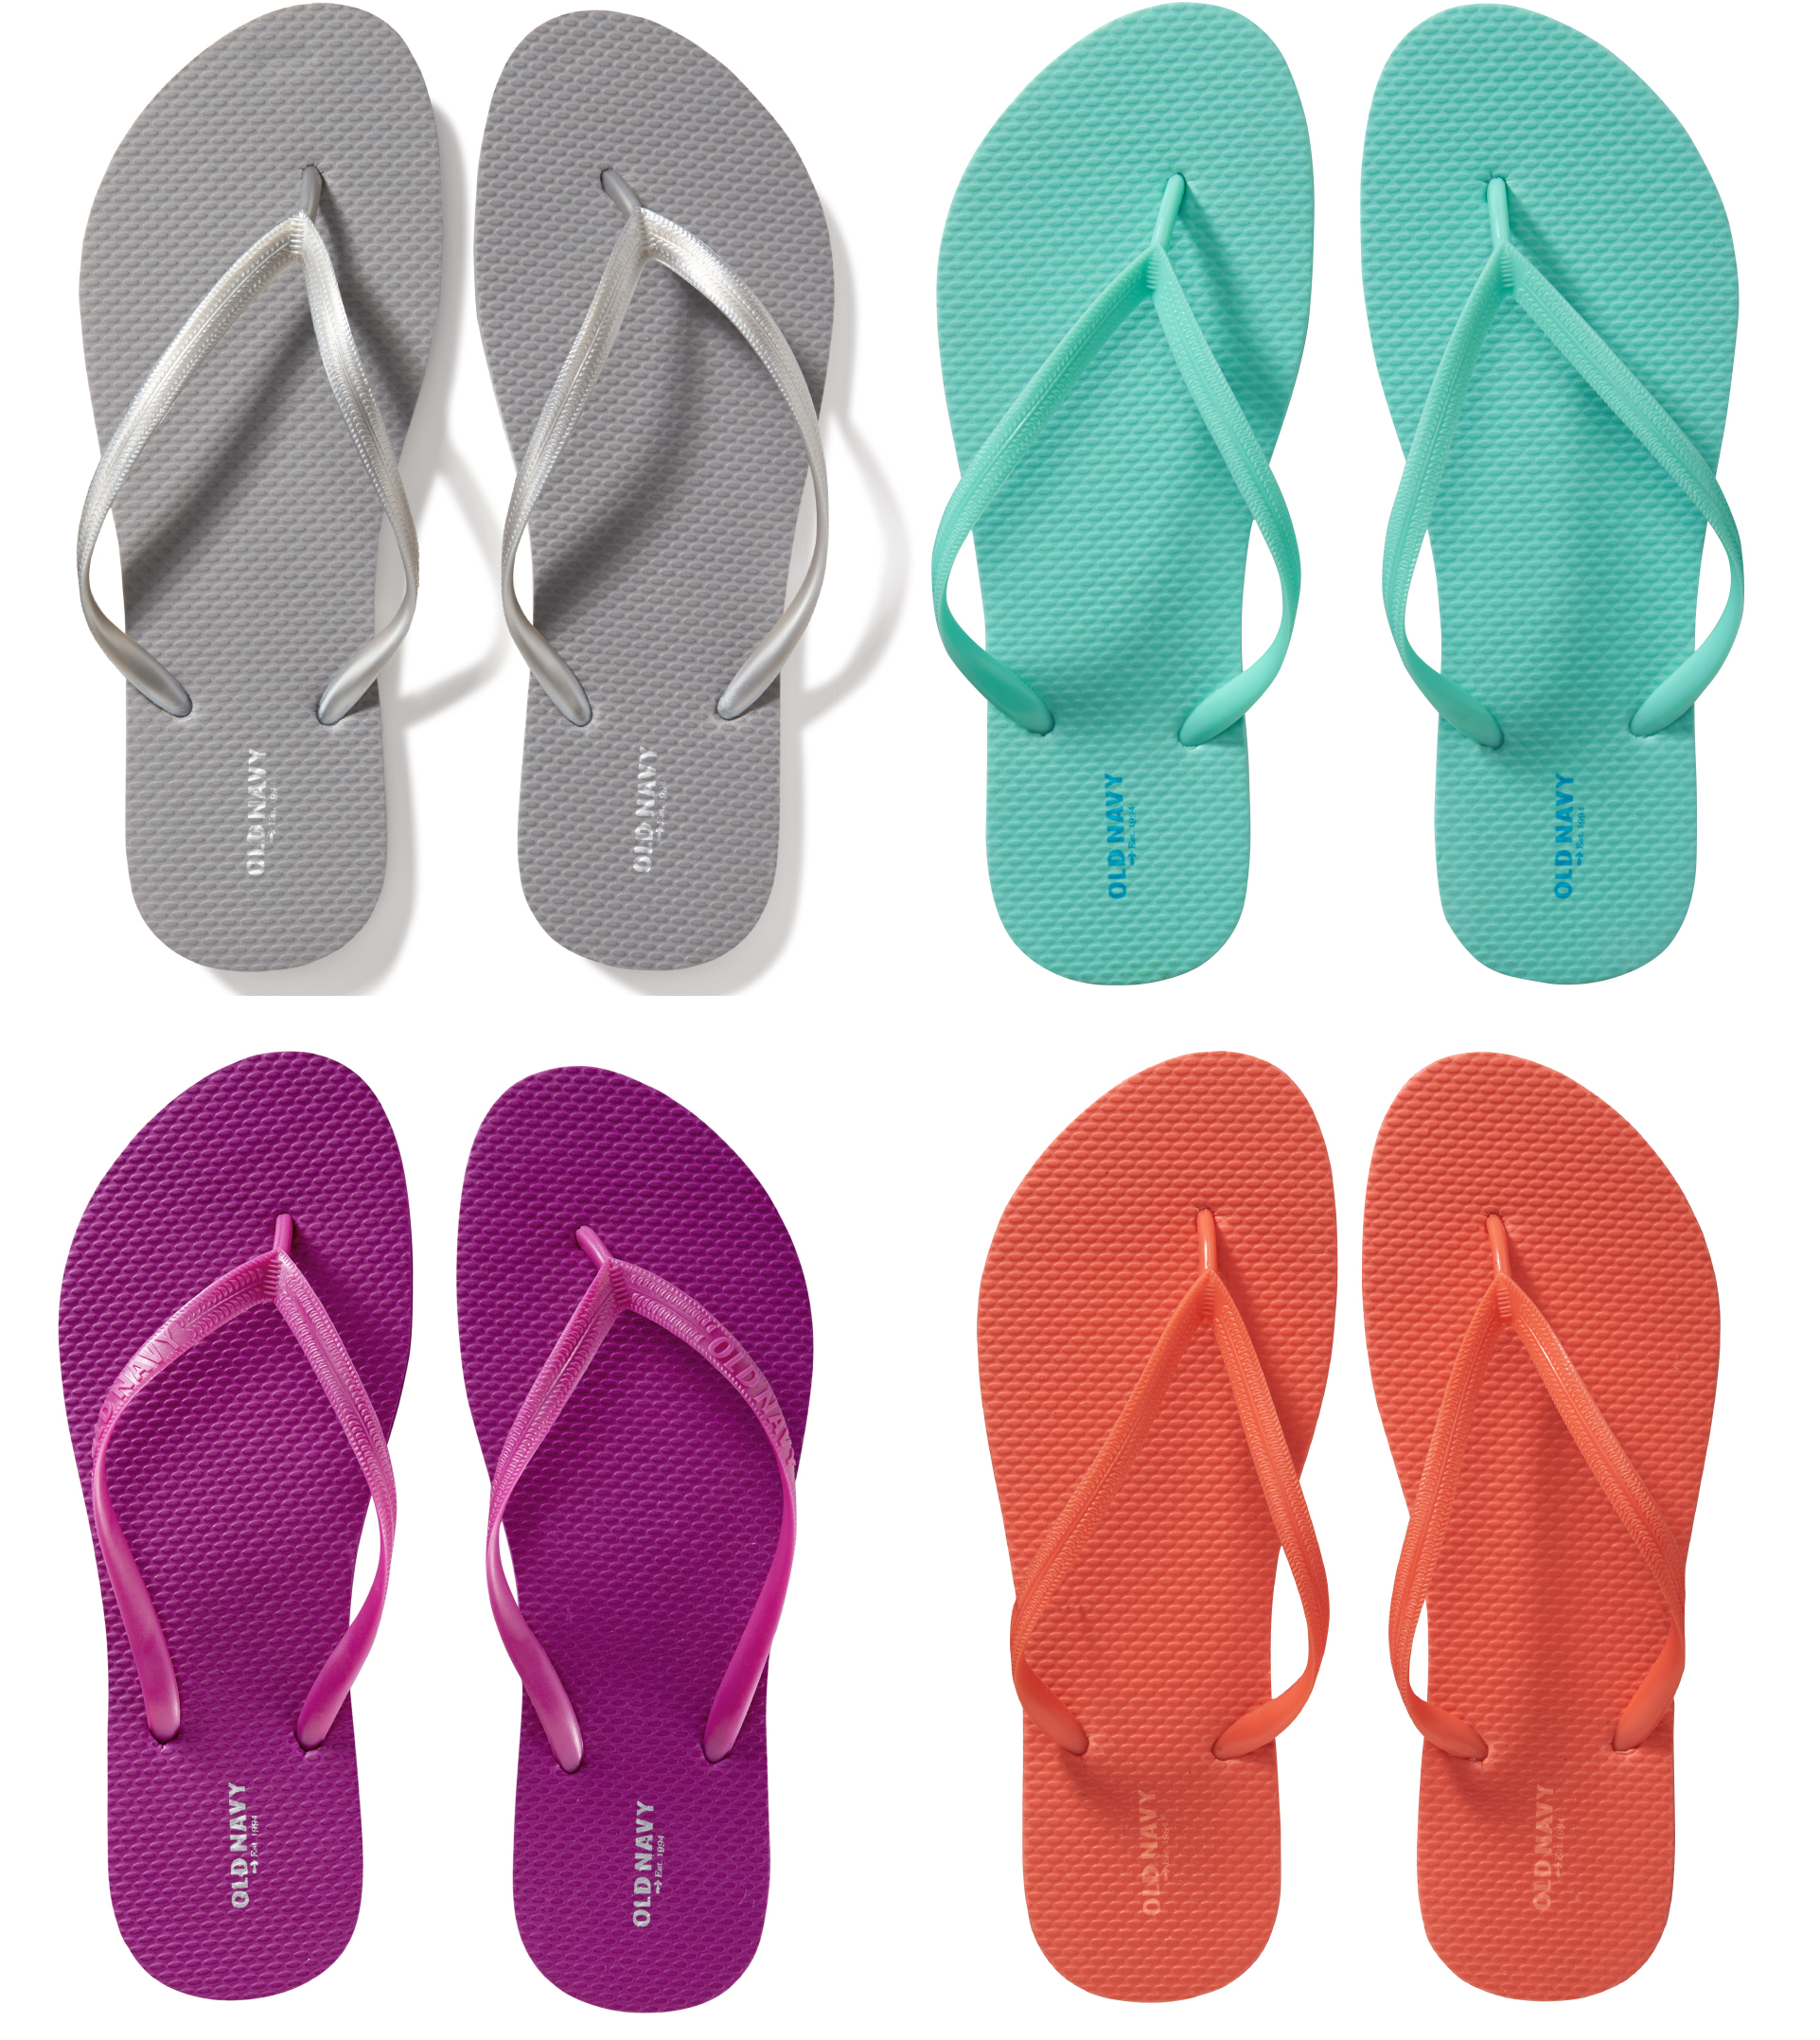 845b7eb79f7b Old Navy Flip-Flops Will Go on Sale for  1 on Saturday